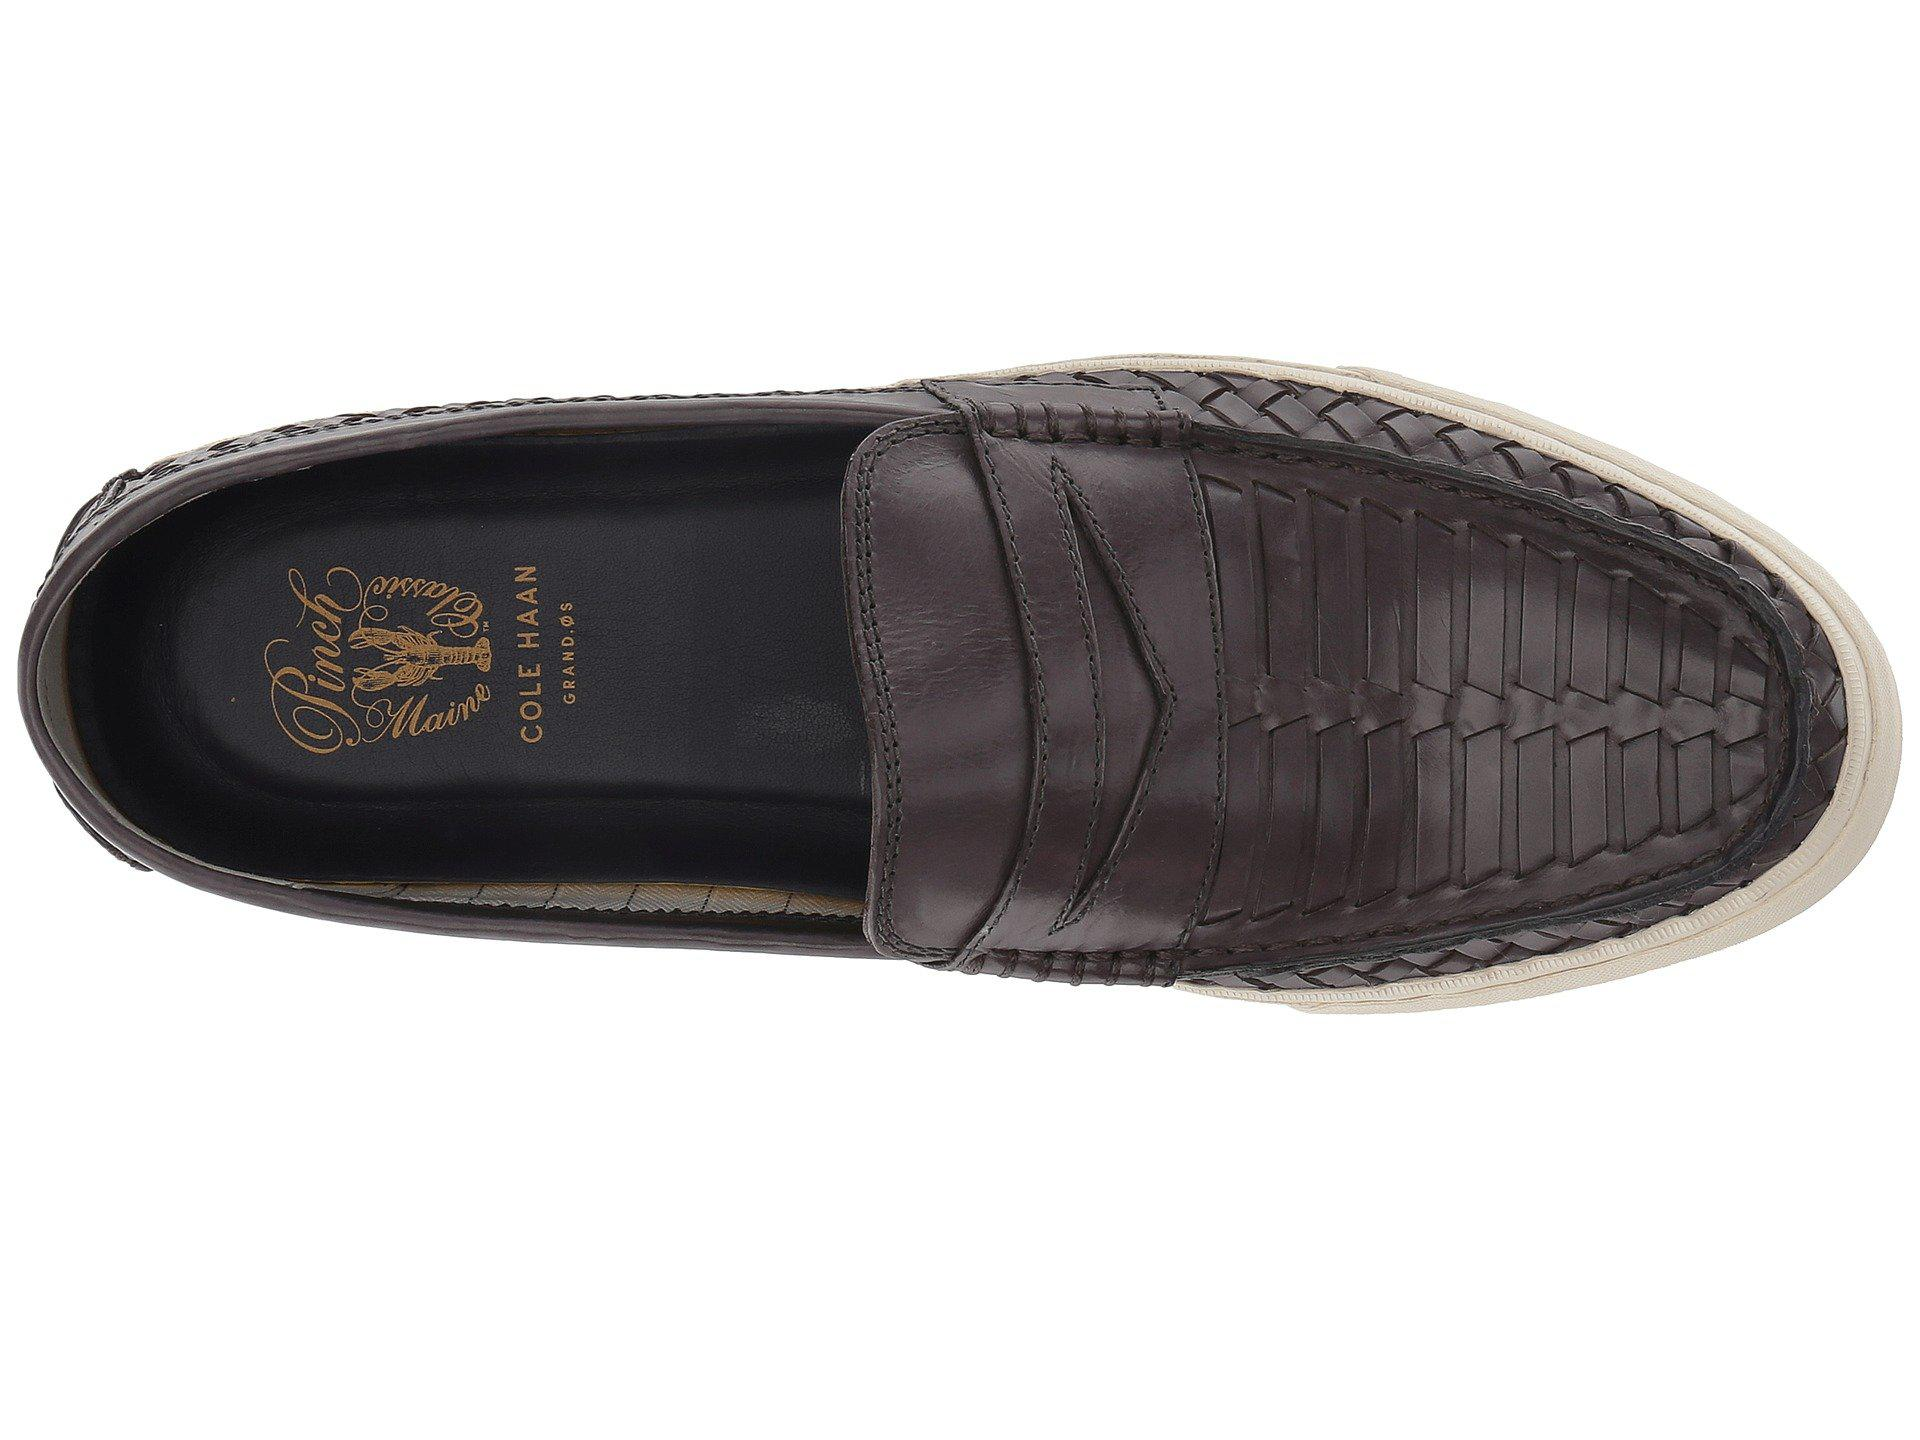 52c9f008d049 Cole Haan - Multicolor Pinch Weekender Luxe Huarache Loafer for Men - Lyst.  View fullscreen